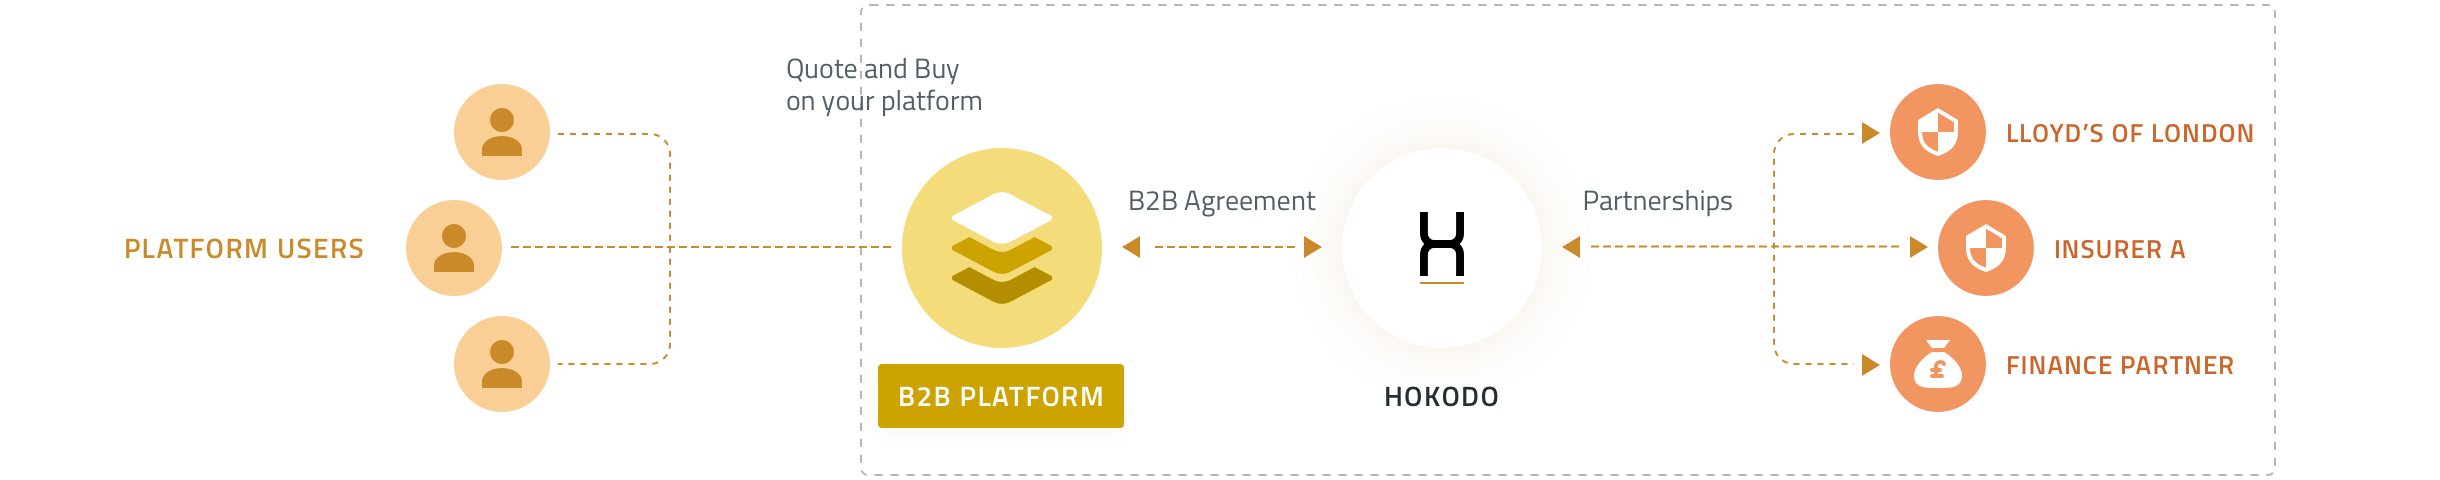 Illustration Hokodo product - B2B Platform